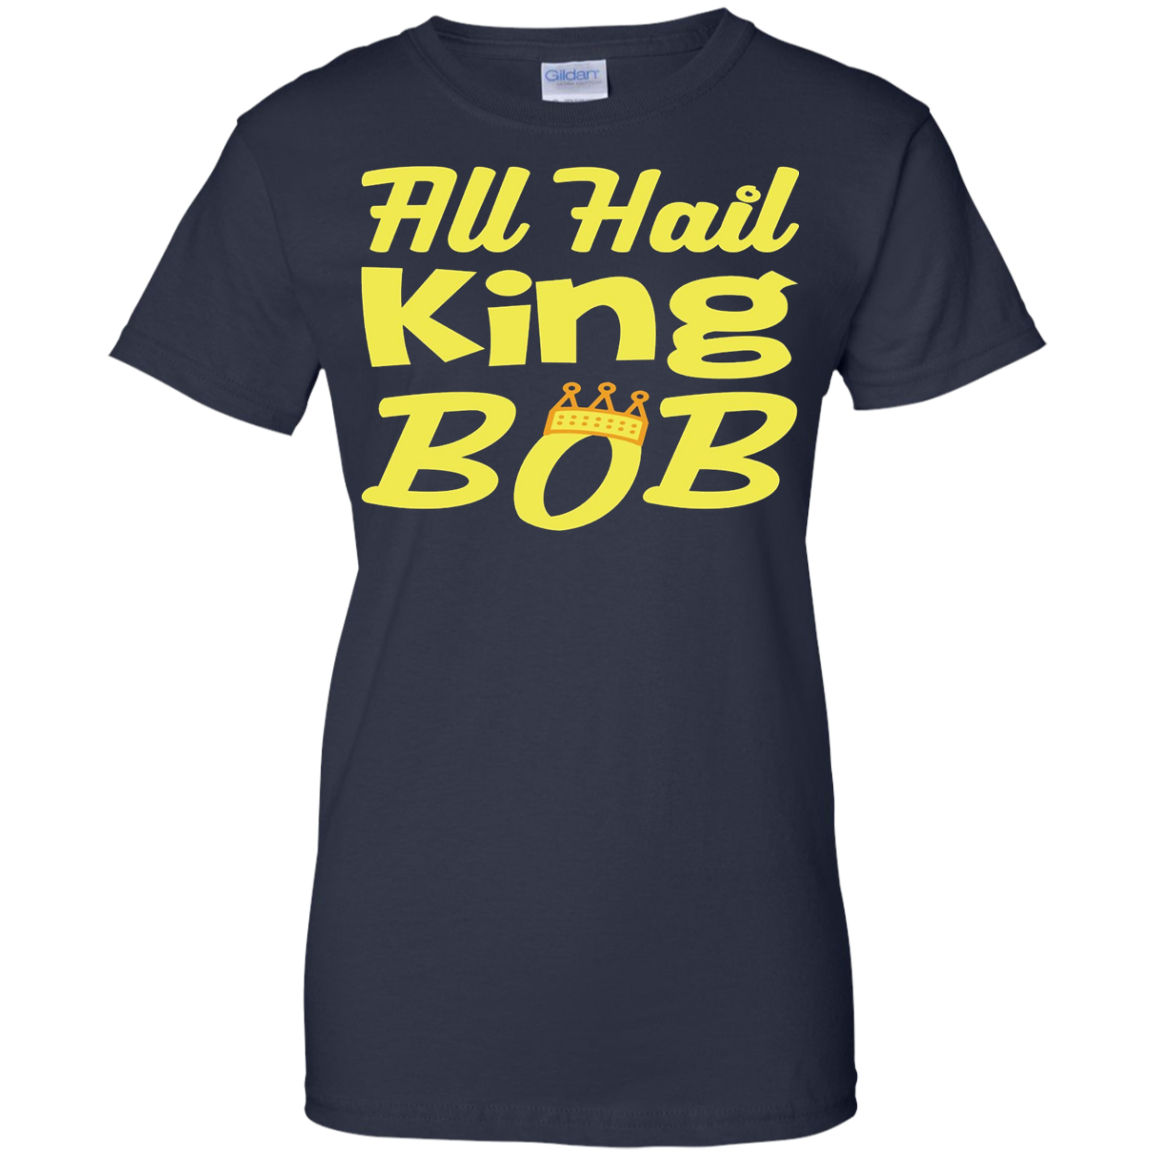 All Hail King Bob - Funny Royal T-Shirt